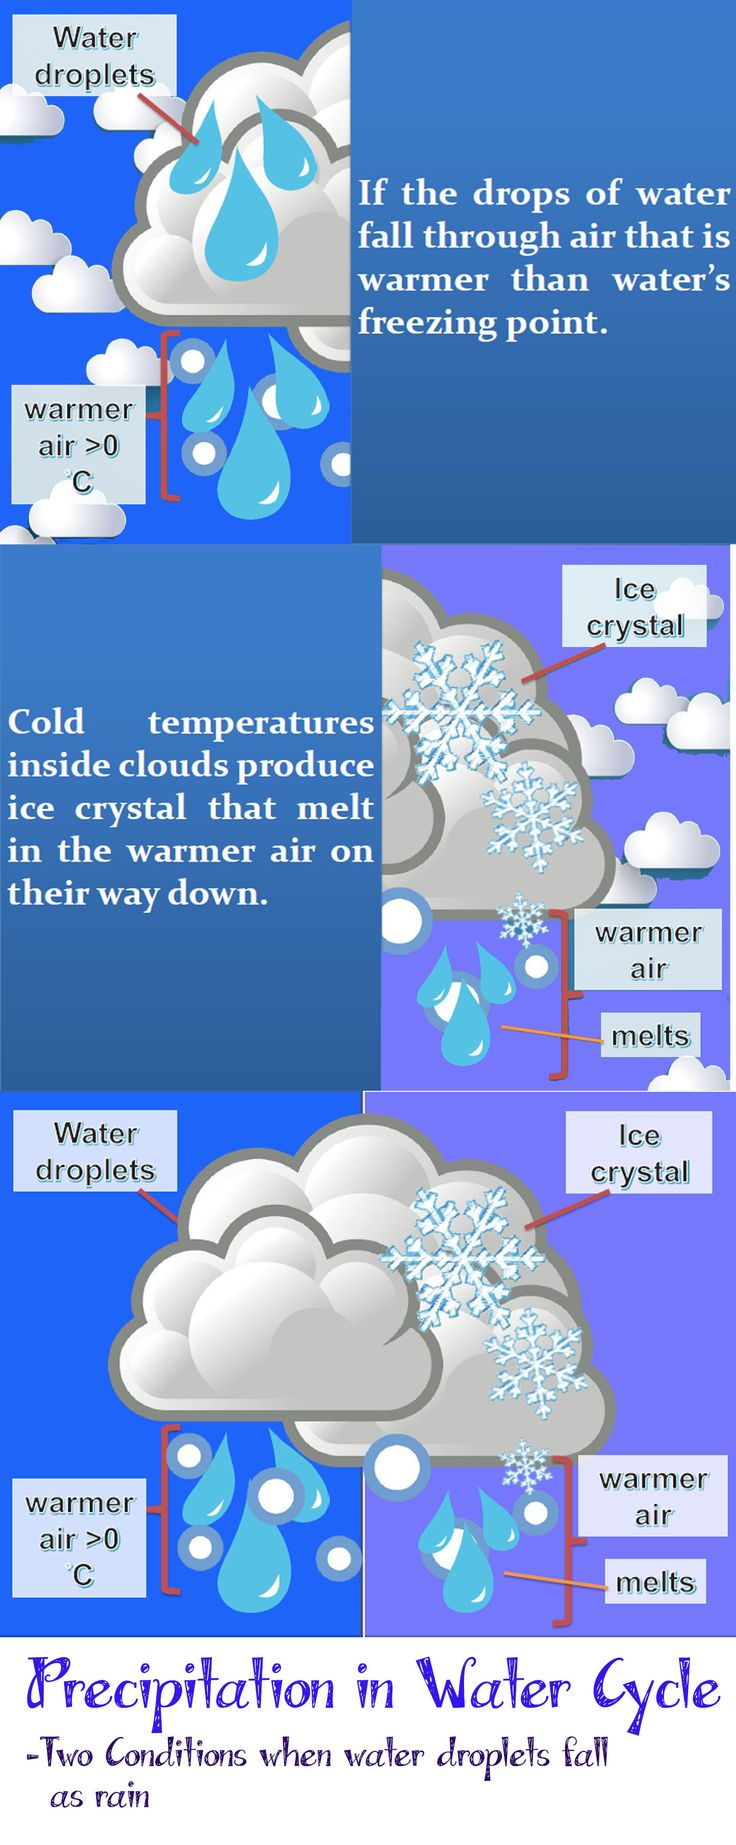 Assignment Week 4: This is the visual picture explain the two possible conditions that water falls as rain. It all depends on the temperatures outside the clouds.